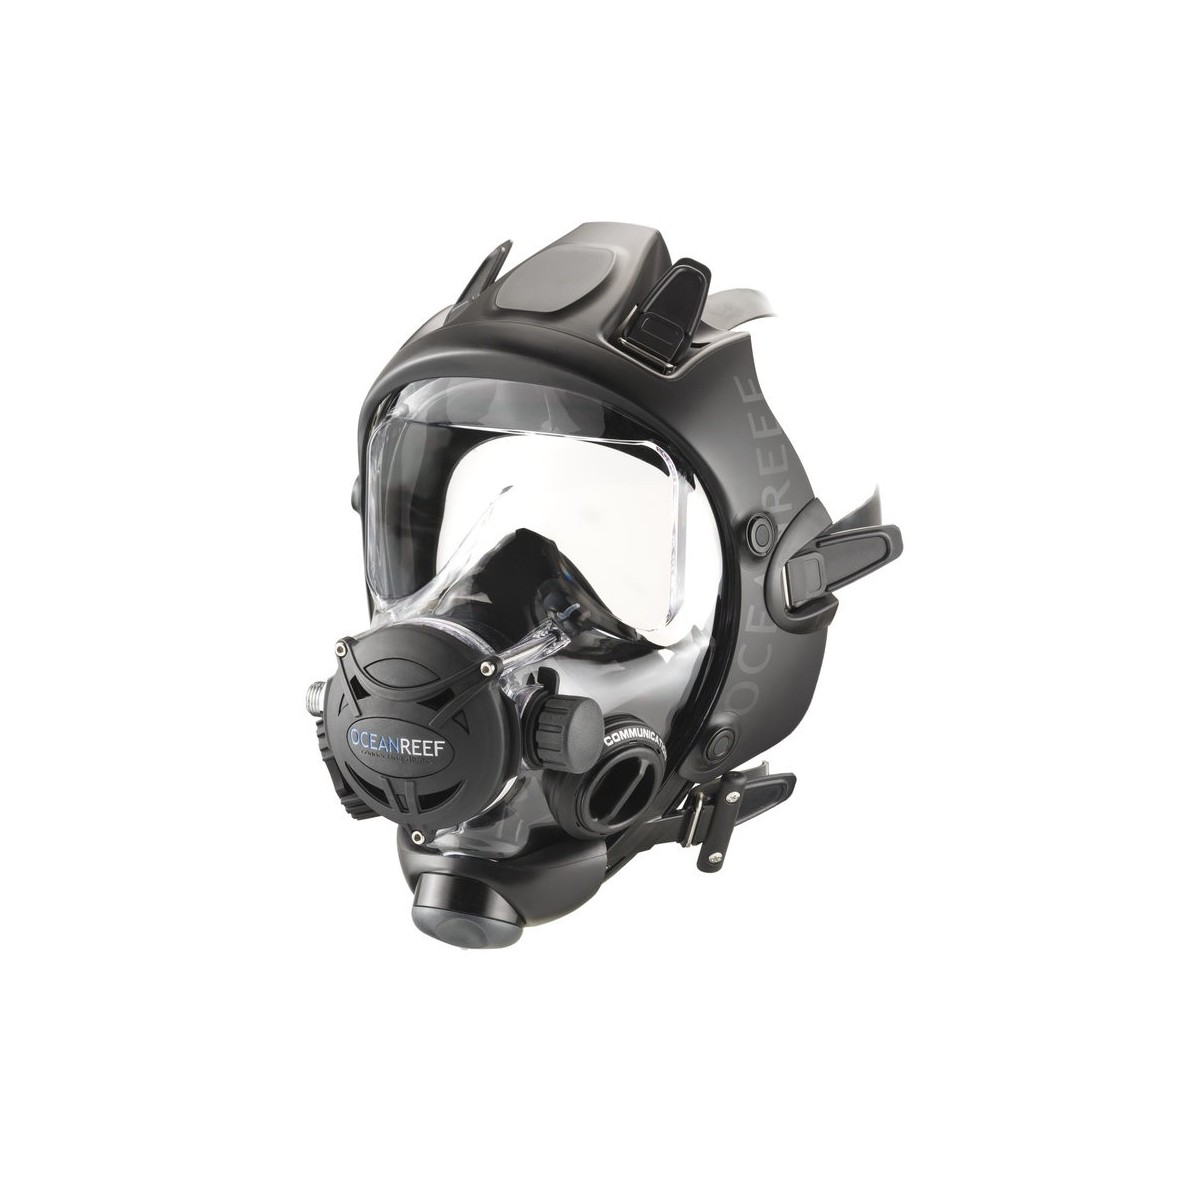 Ocean Reef Space Extender 100 Full Face Mask